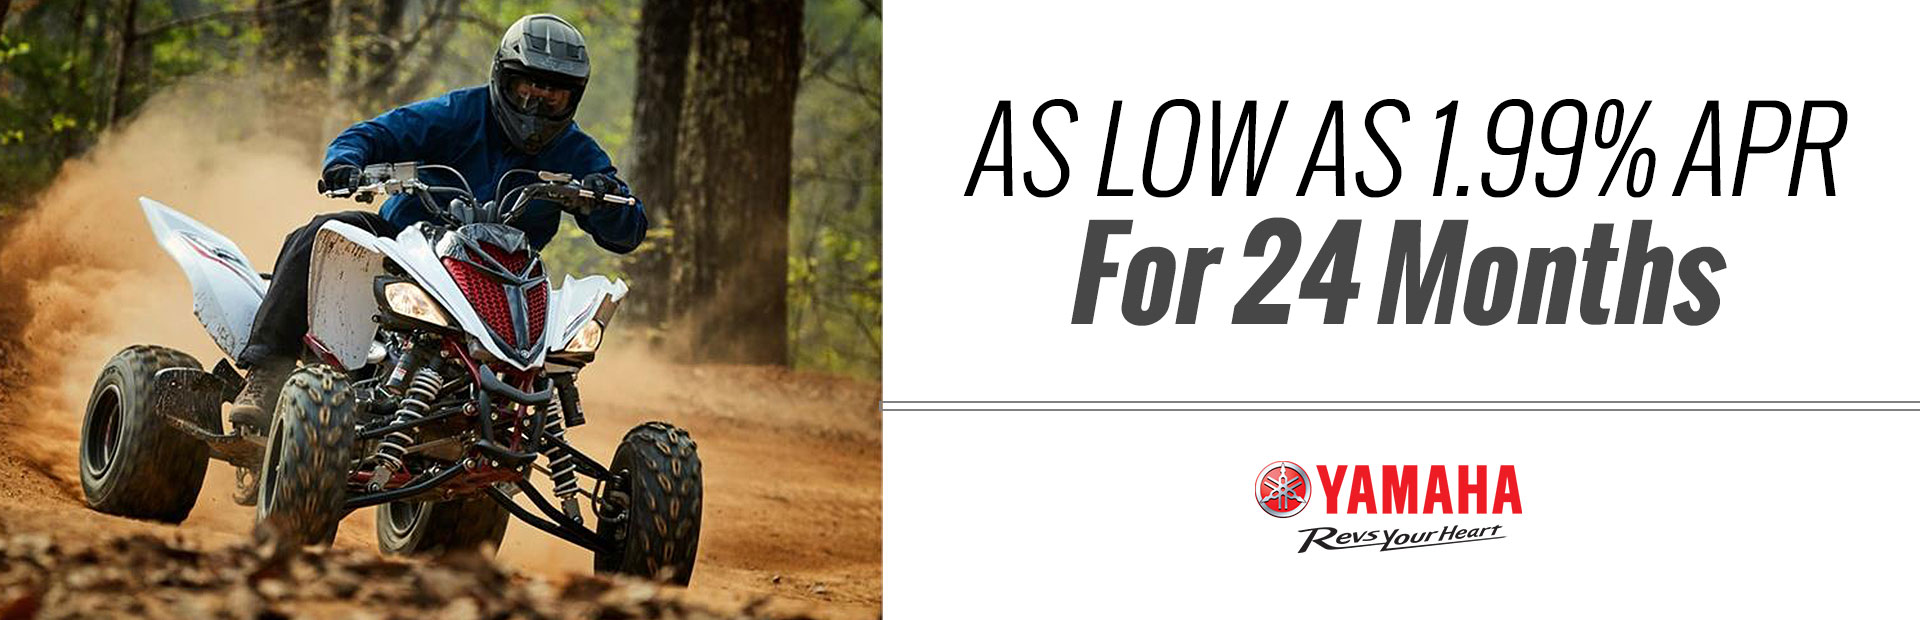 Yamaha: As Low As 1.99% APR For 24 Months